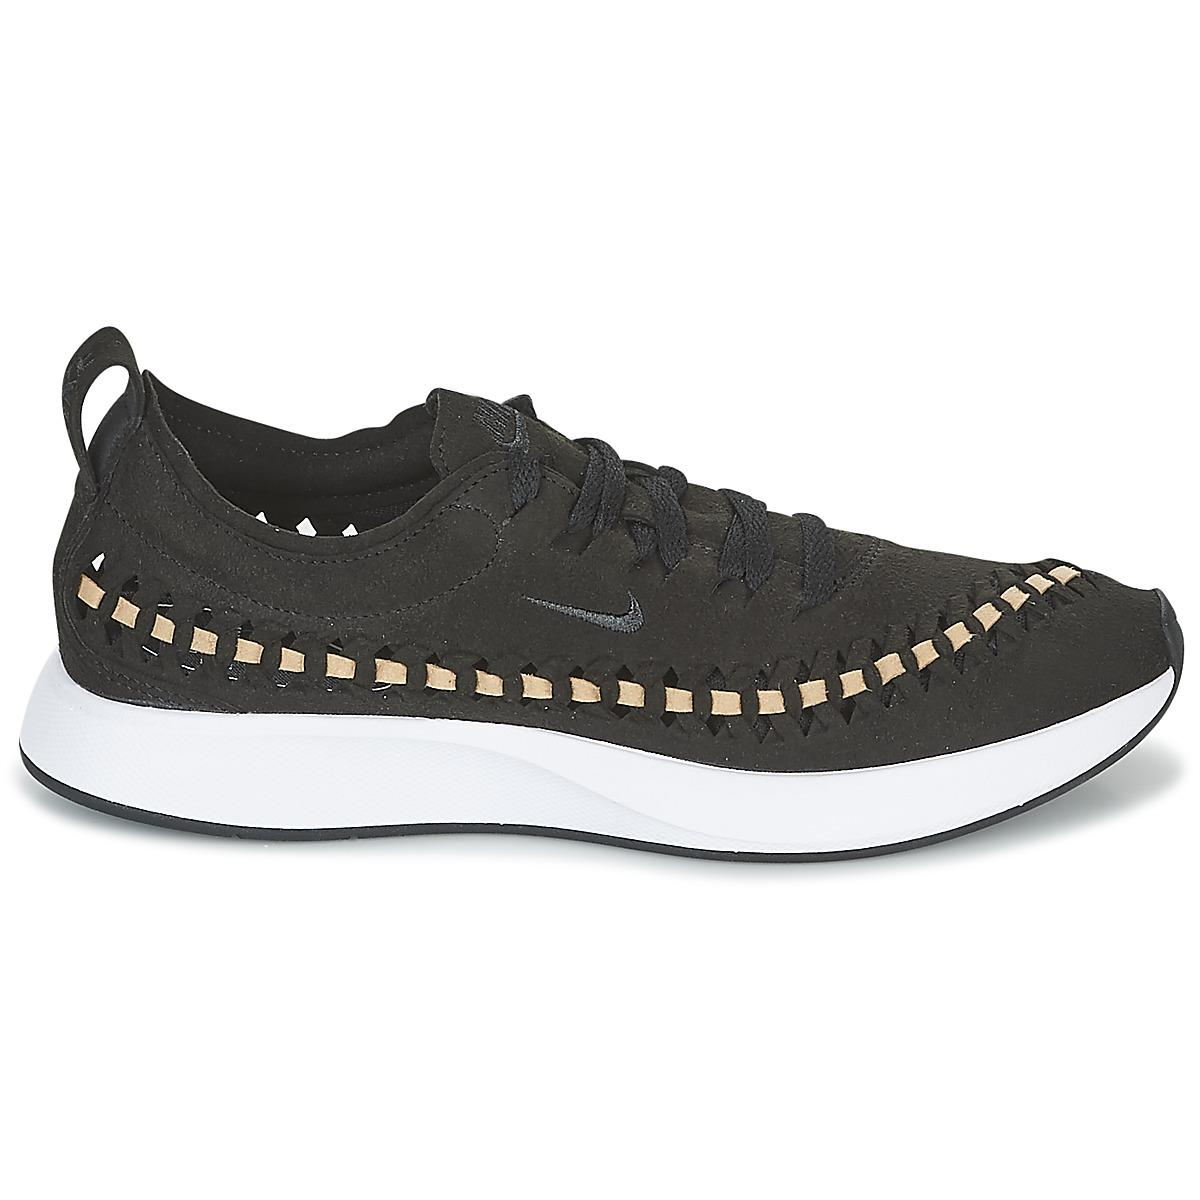 37602d950b6 Nike - Black Dualtone Racer Woven W Shoes (trainers) - Lyst. View fullscreen